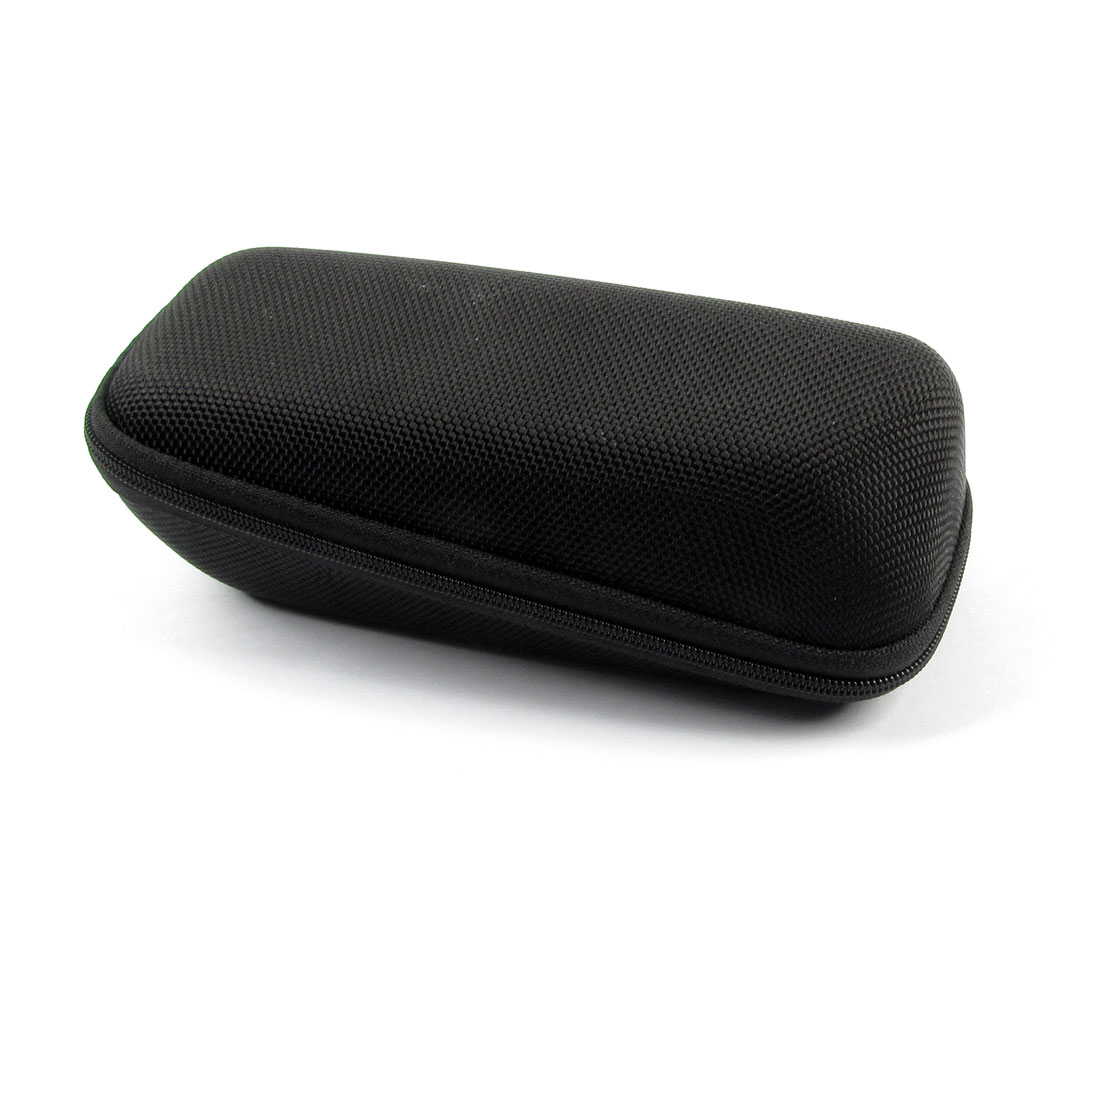 Flannel Lining Gradient Zipper Closure Eyeglasses Eyewear Box Case Black